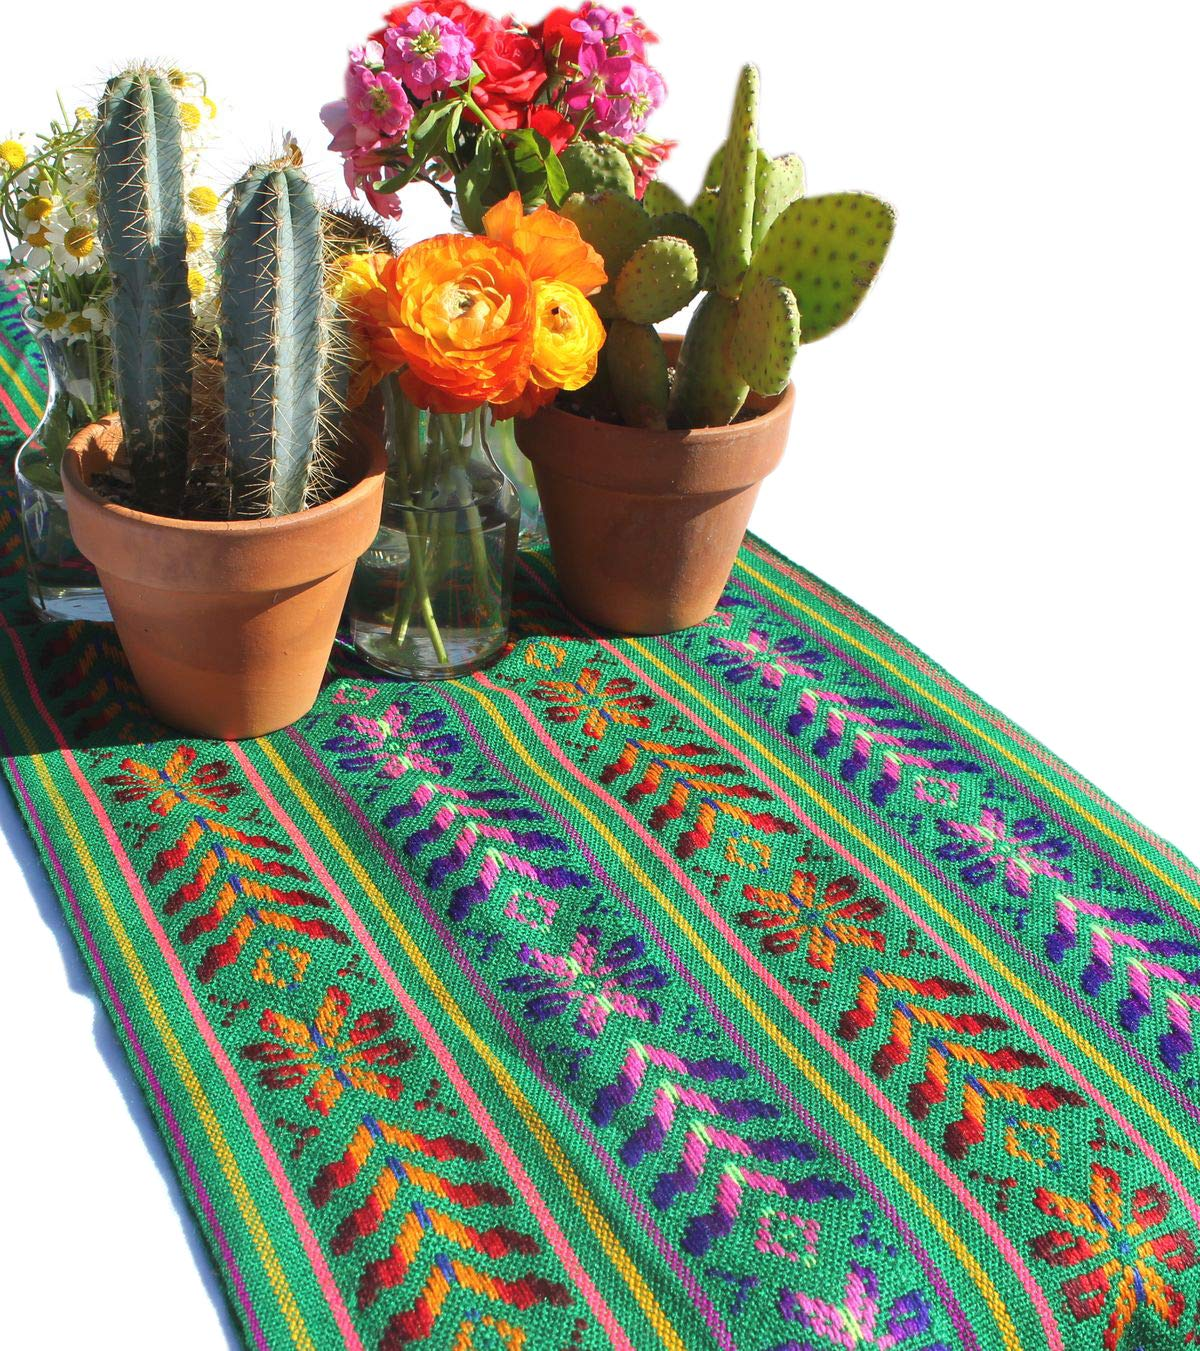 Del Mex Woven Rebozo Style Mexican Table Runner Scarf (Green)